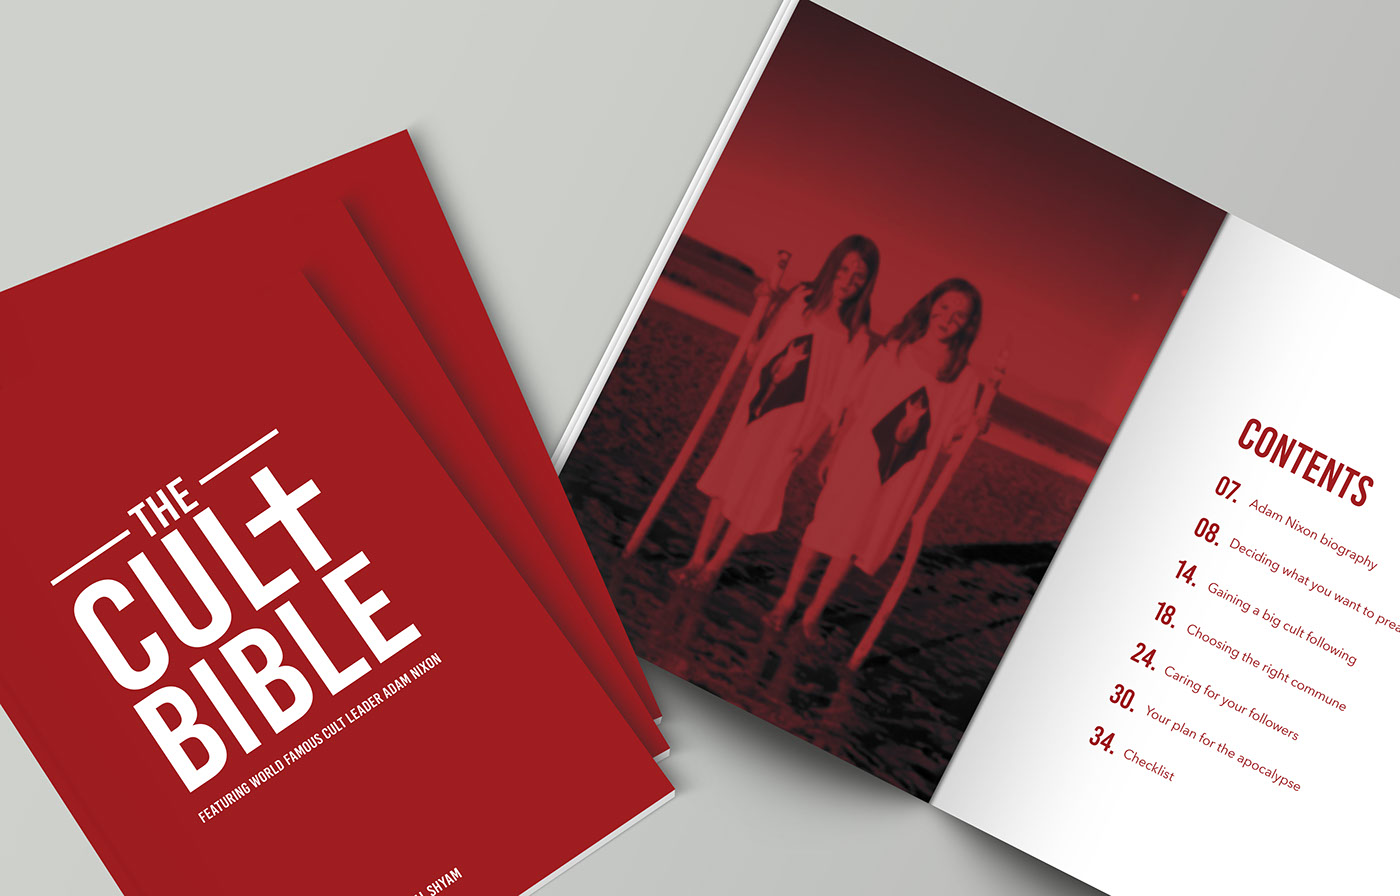 The Cult Bible - Publication on Behance